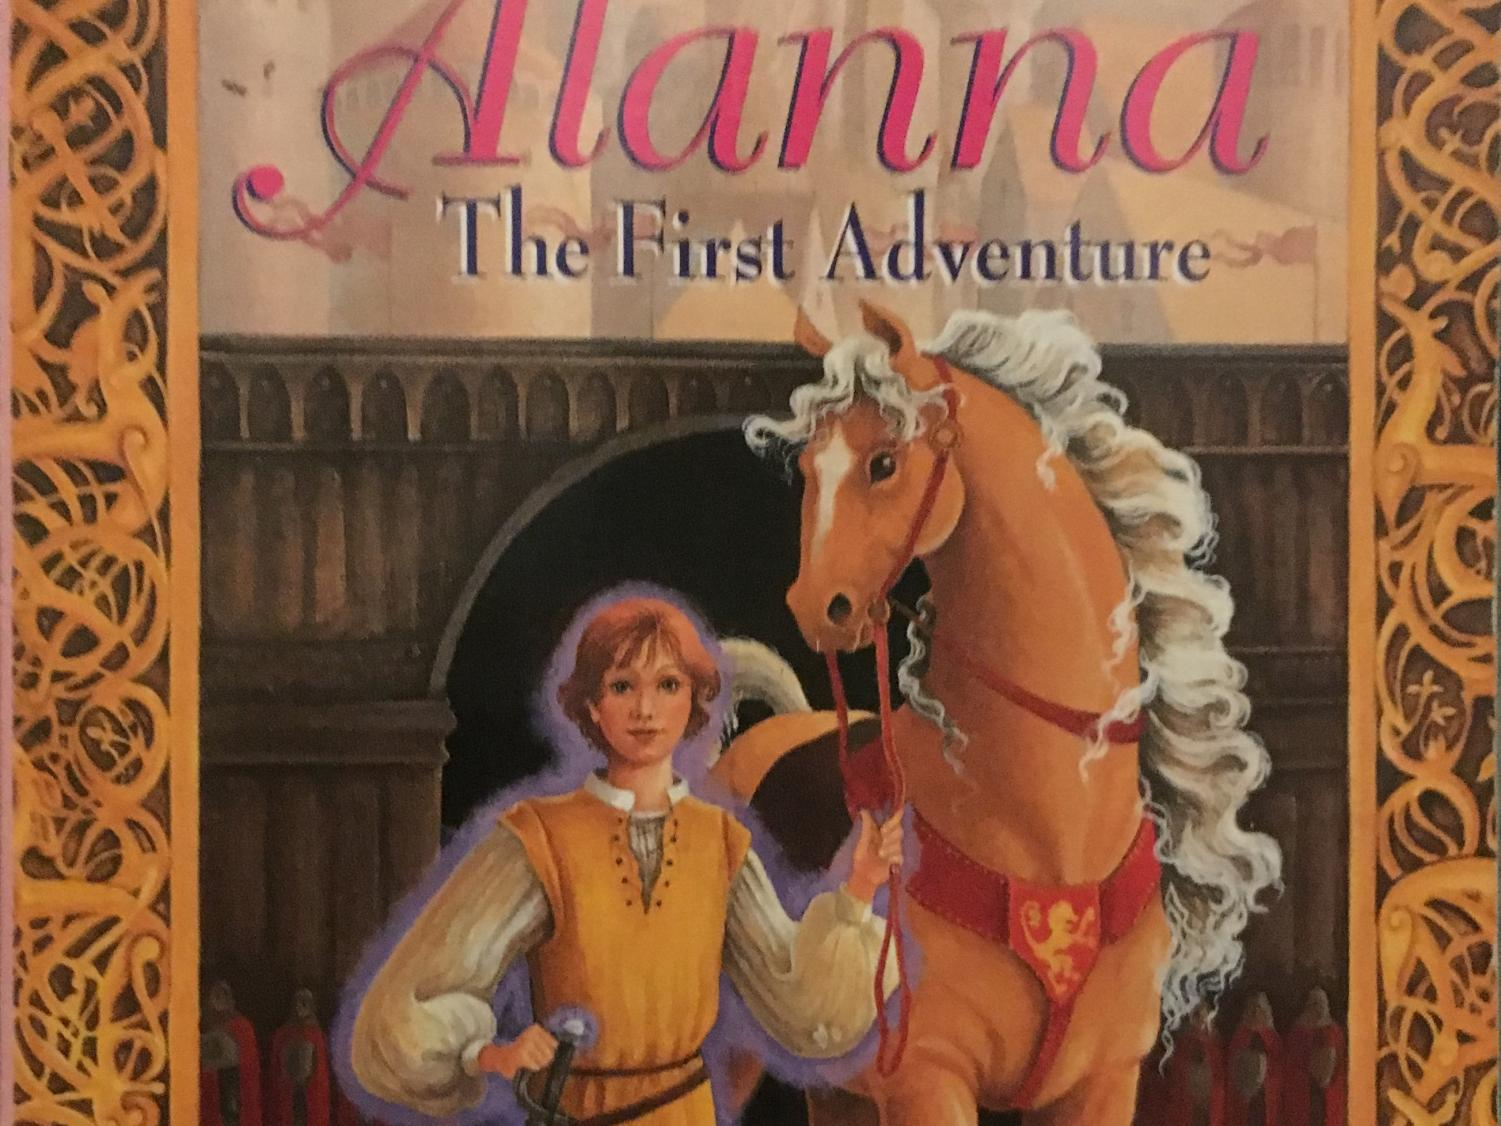 With well-written stories, relatable characters and inspiring messages, Tamora Pierce has put forth 31 brilliant and well-crafted stories.